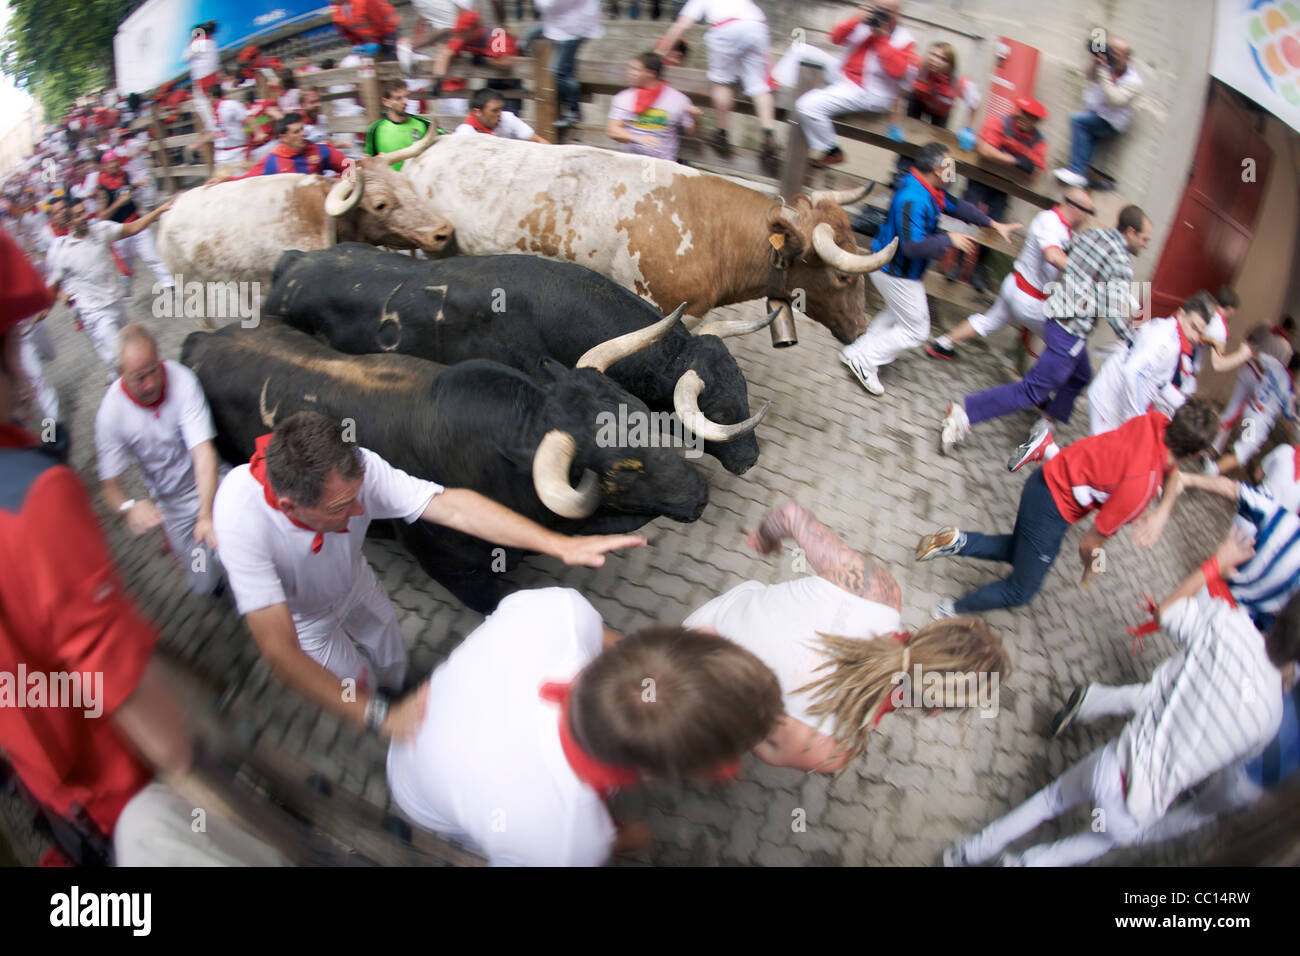 Crowds running with bulls during the annual festival of San Fermin (aka the running of the bulls) in Pamplona, Spain. Stock Photo